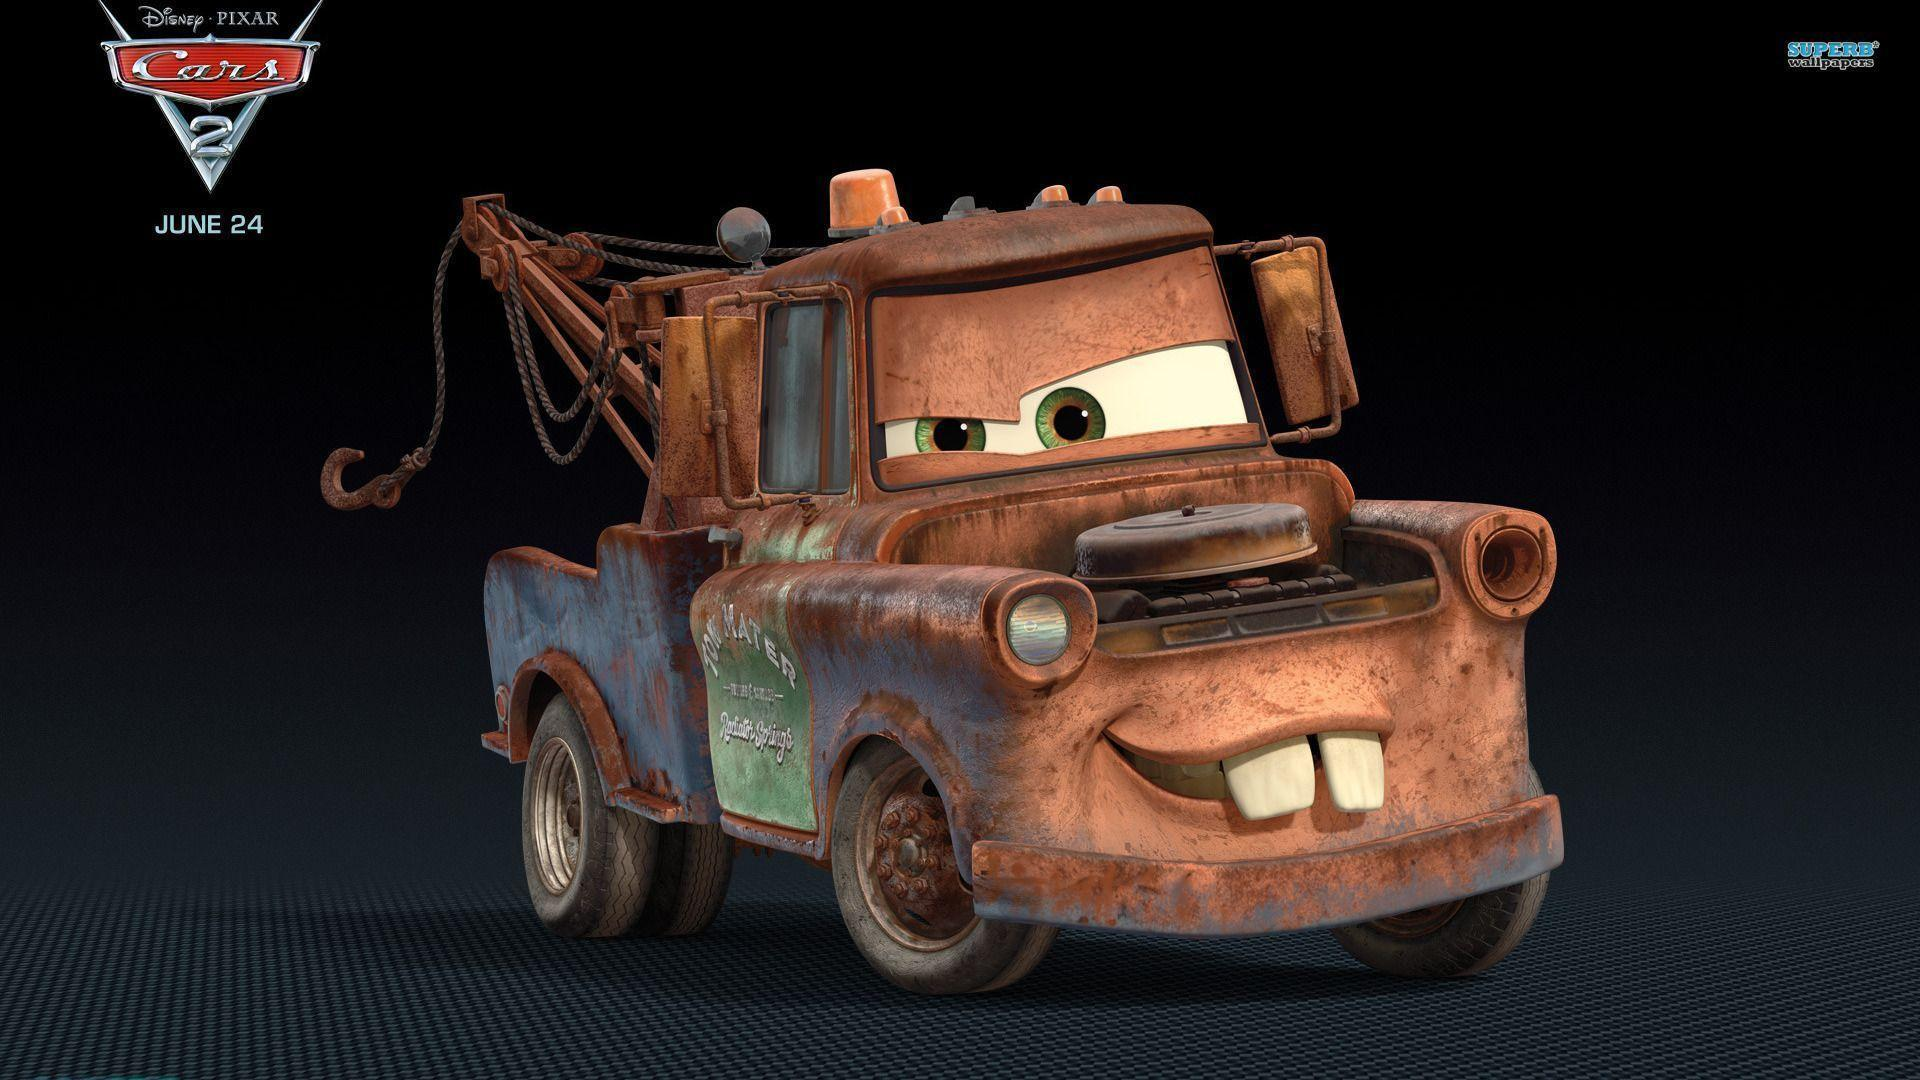 Mater - Cars 2 wallpaper - Cartoon wallpapers - #